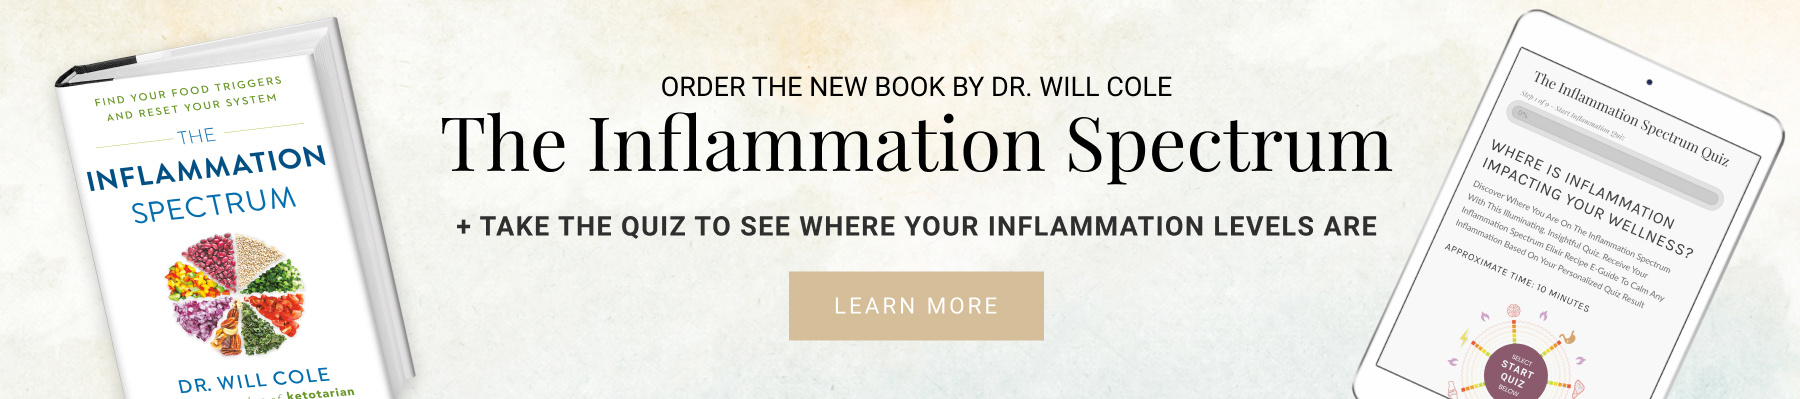 Inflammation Spectrum Home